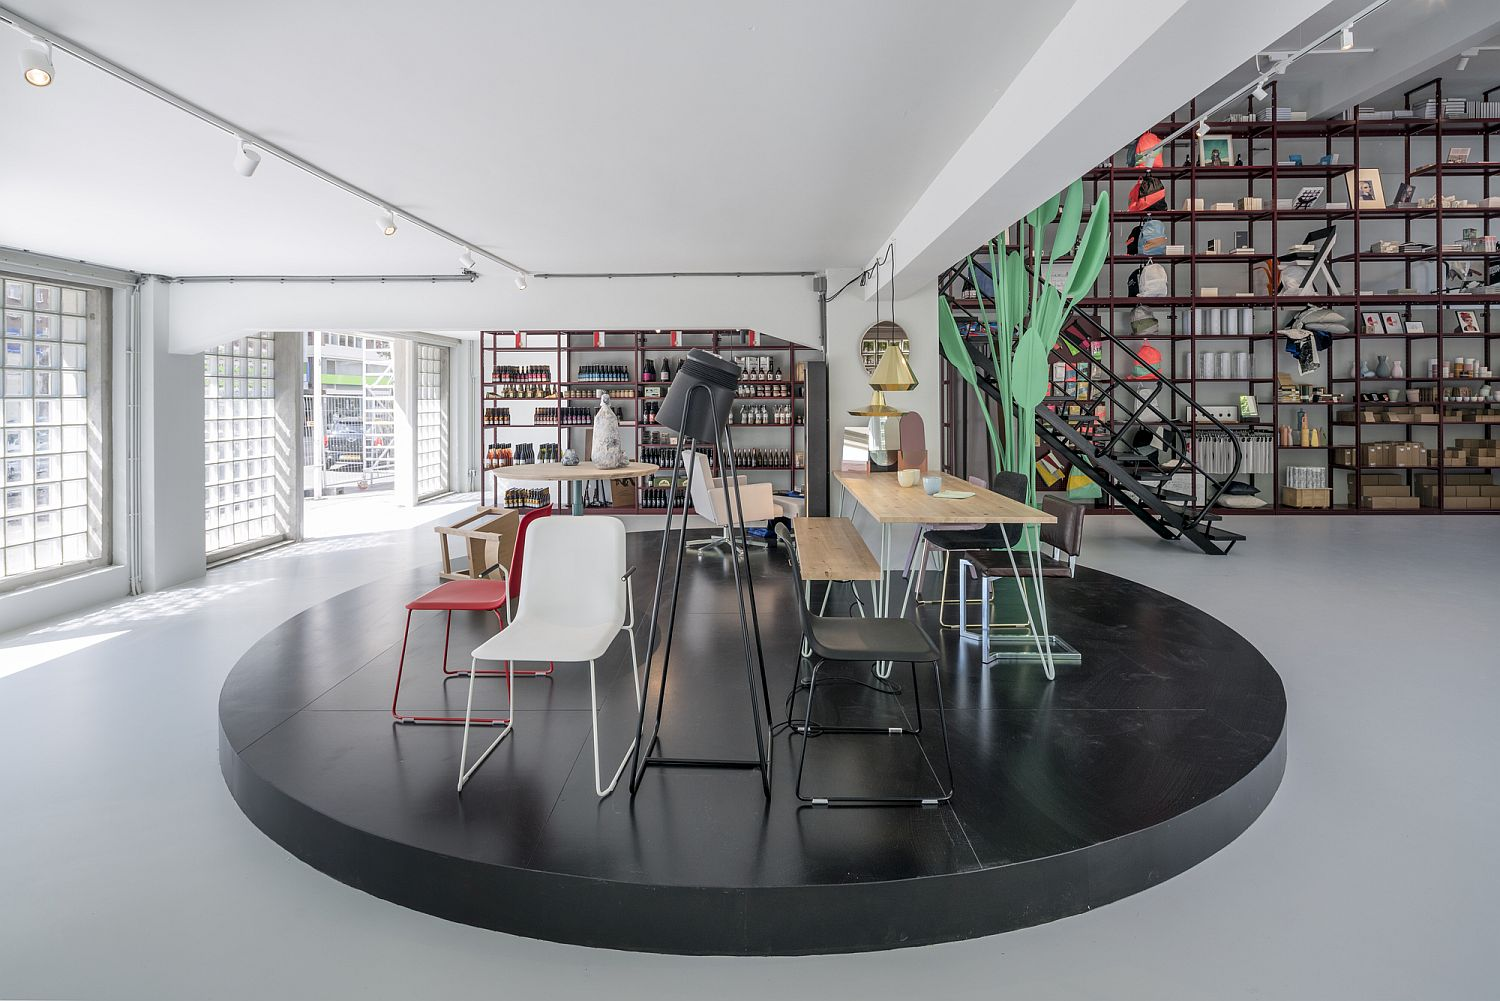 A-touch-of-mint-green-revitalizes-the-open-interior